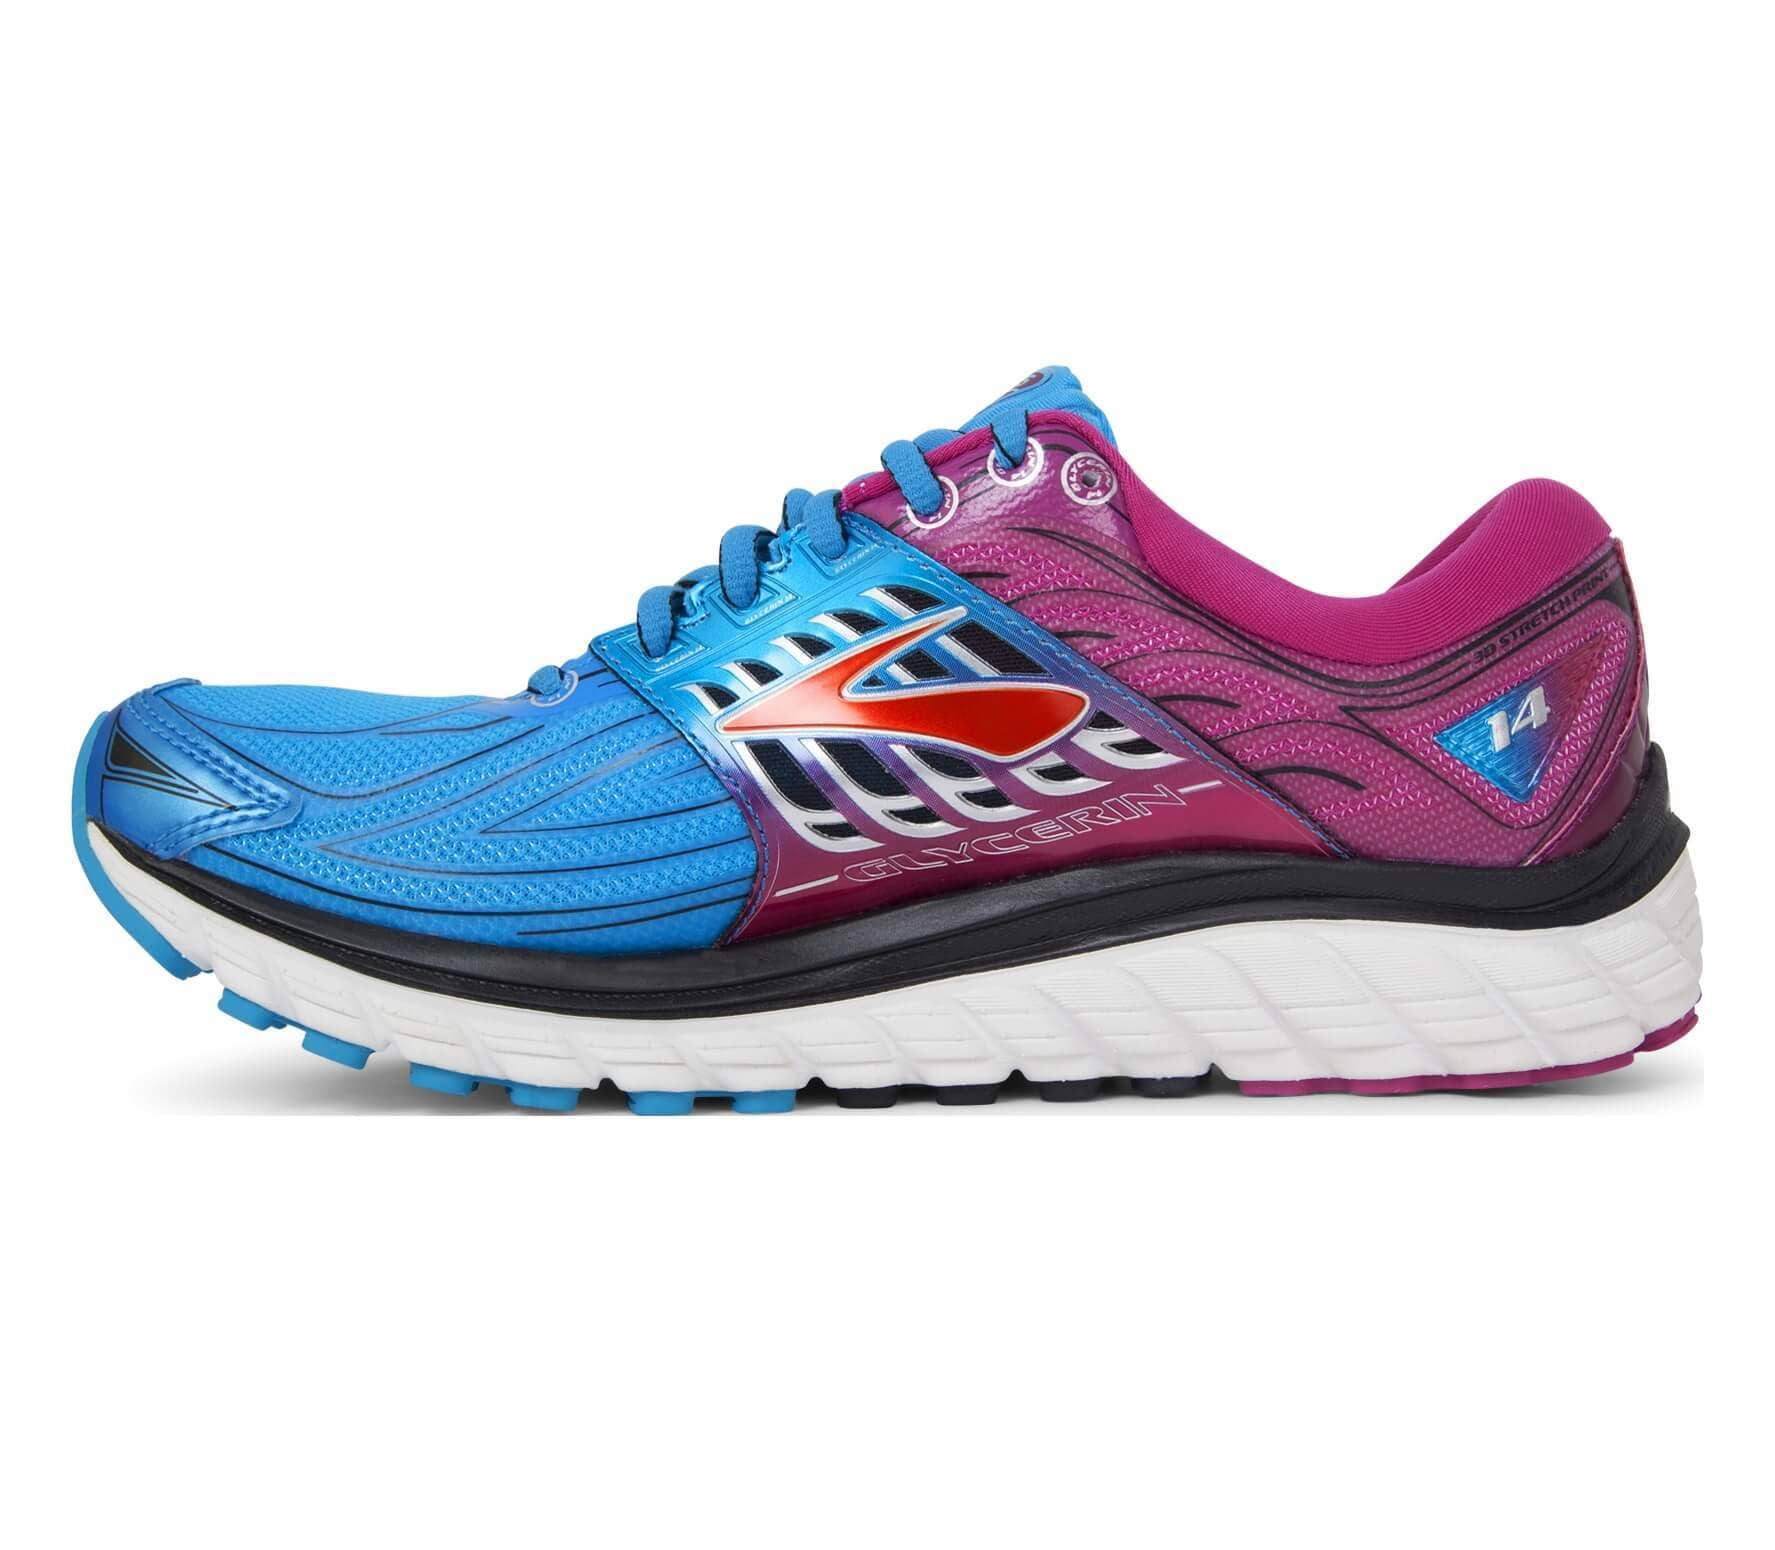 a4927da5ce2f7 Brooks - Glycerin 14 women s running shoes (blue pink) - buy it at ...